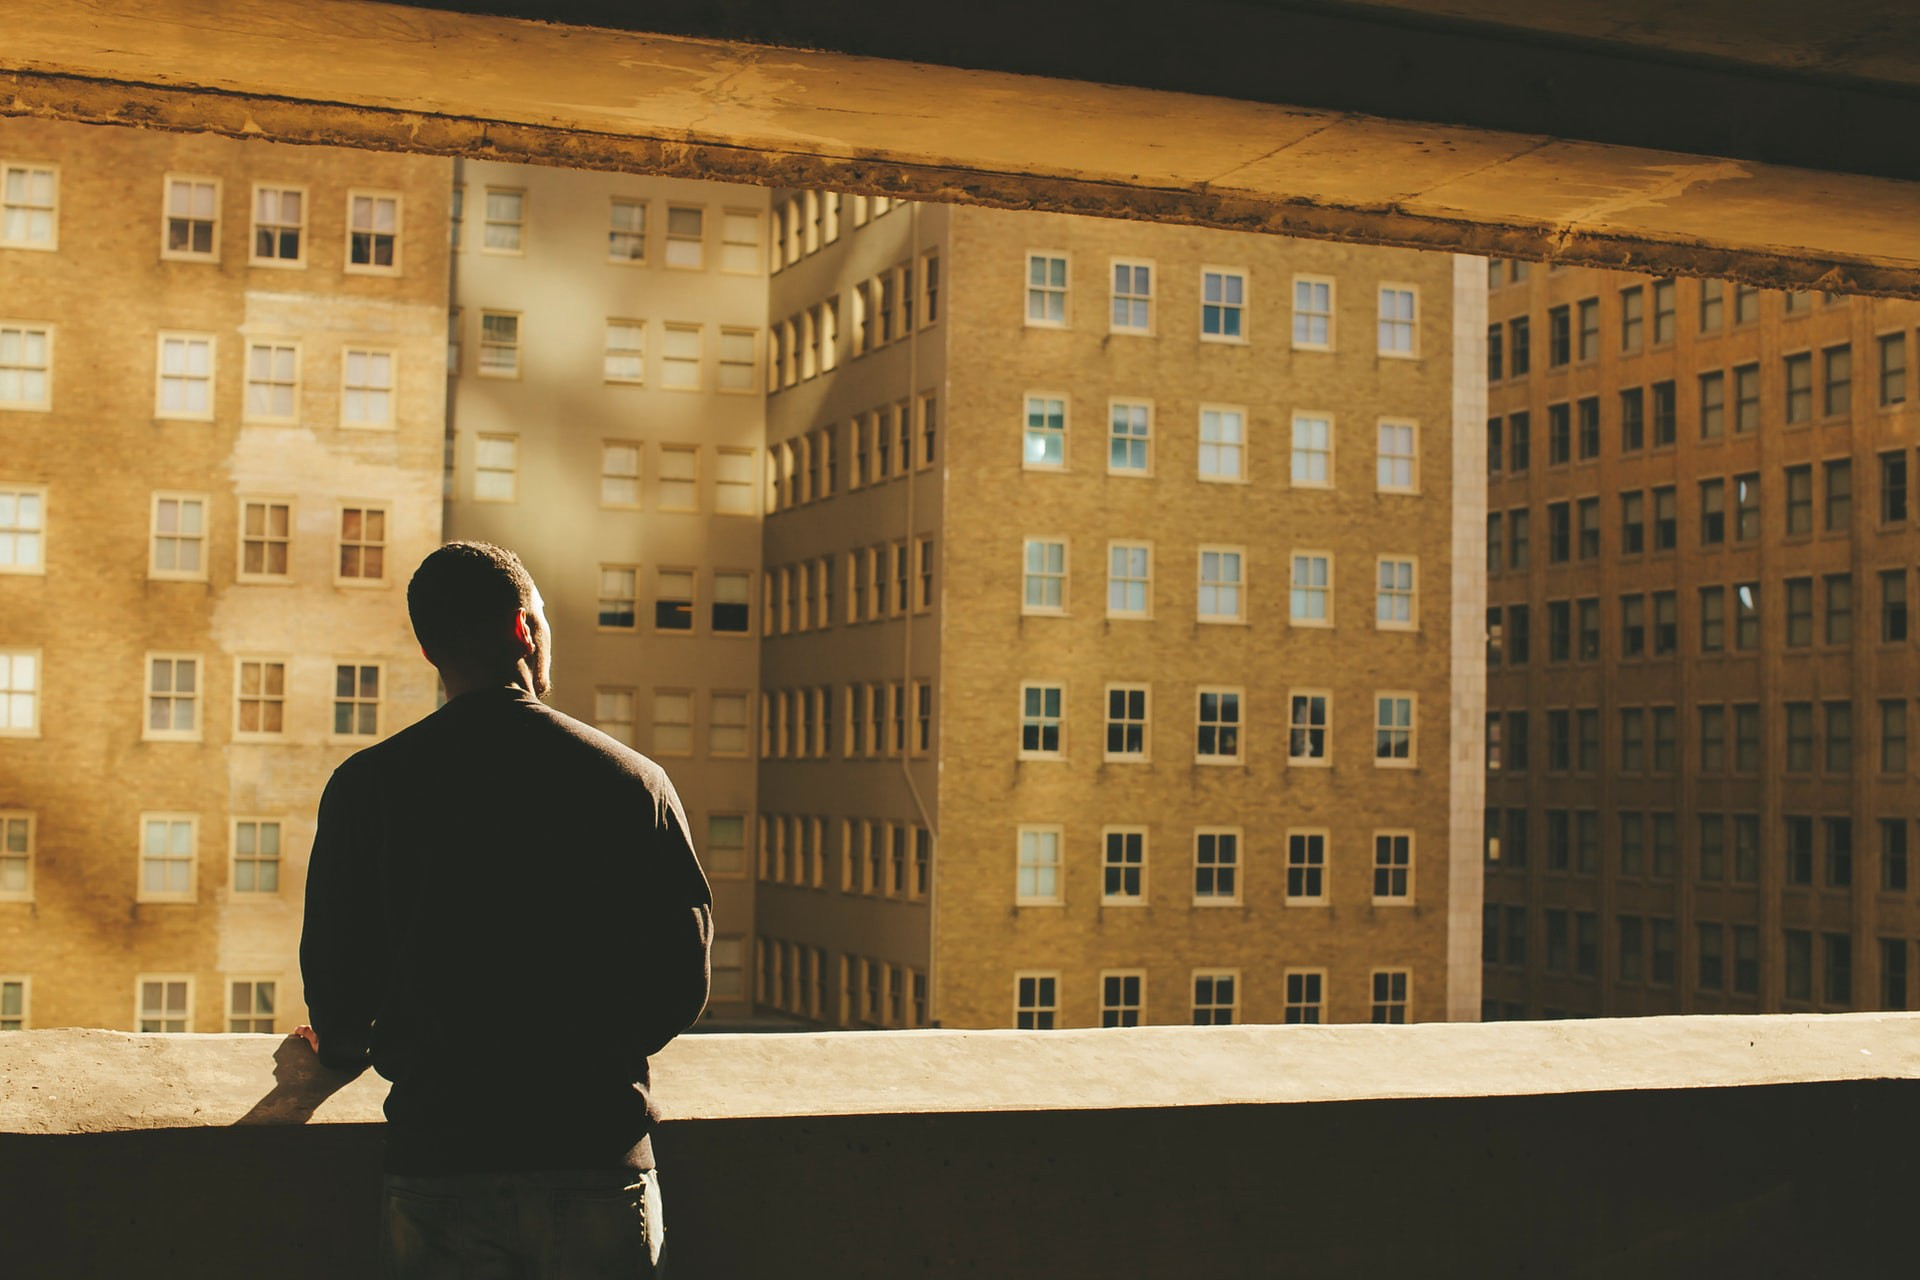 Man at the window looking at other buildings